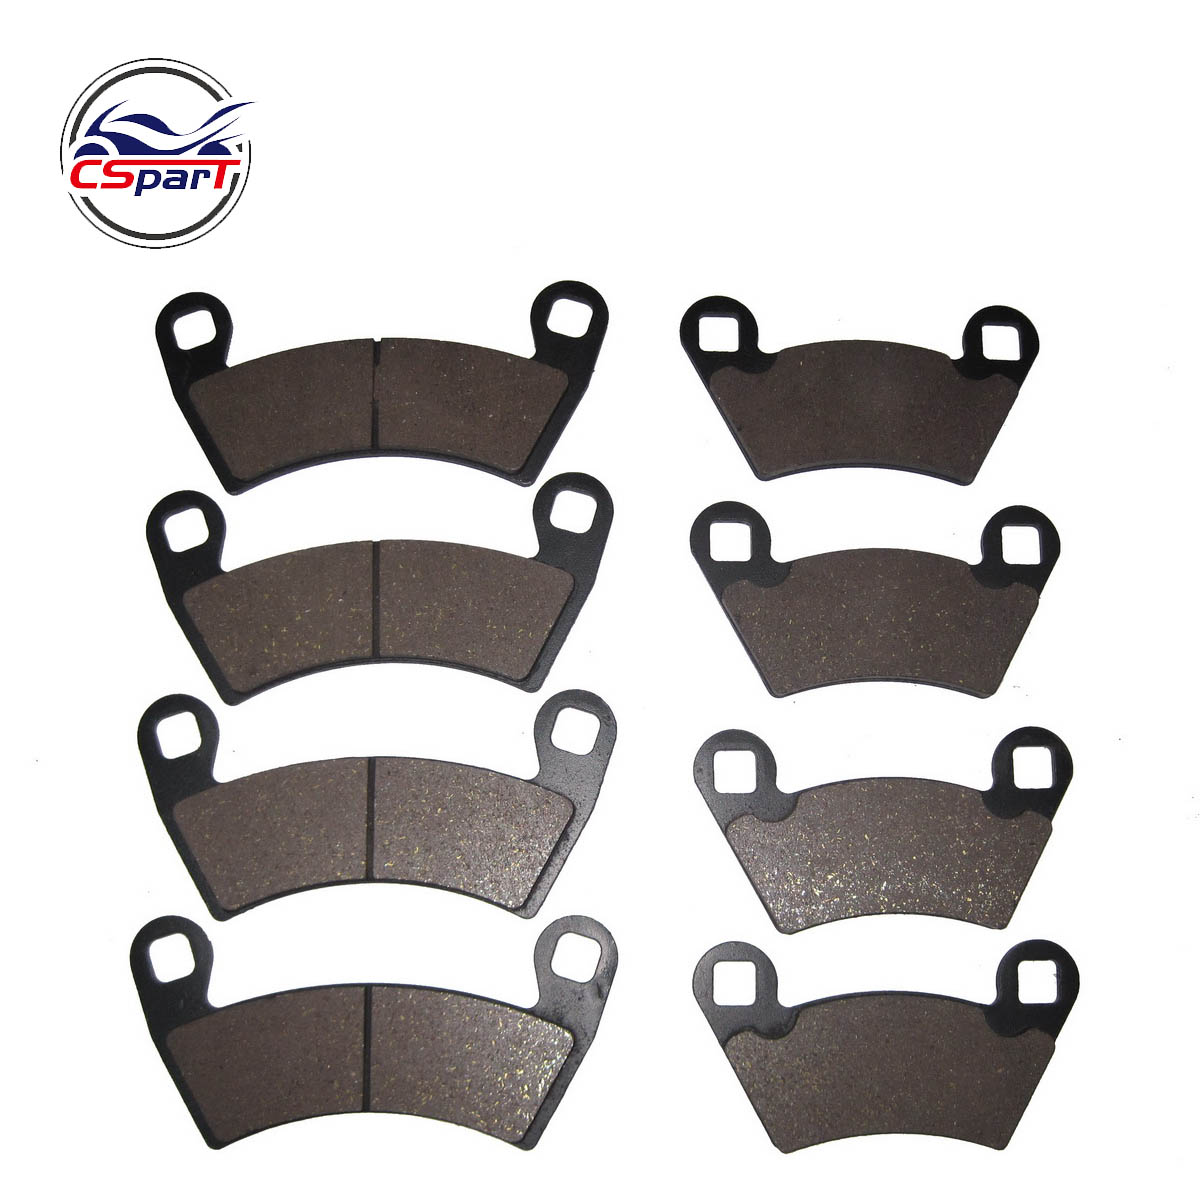 4 SET Semi-metallic Non-asbestos Front & Rear Brake Pads For Polaris Ranger 500 2x4 Carb, XP 700  800 4x4 RZR-4 900